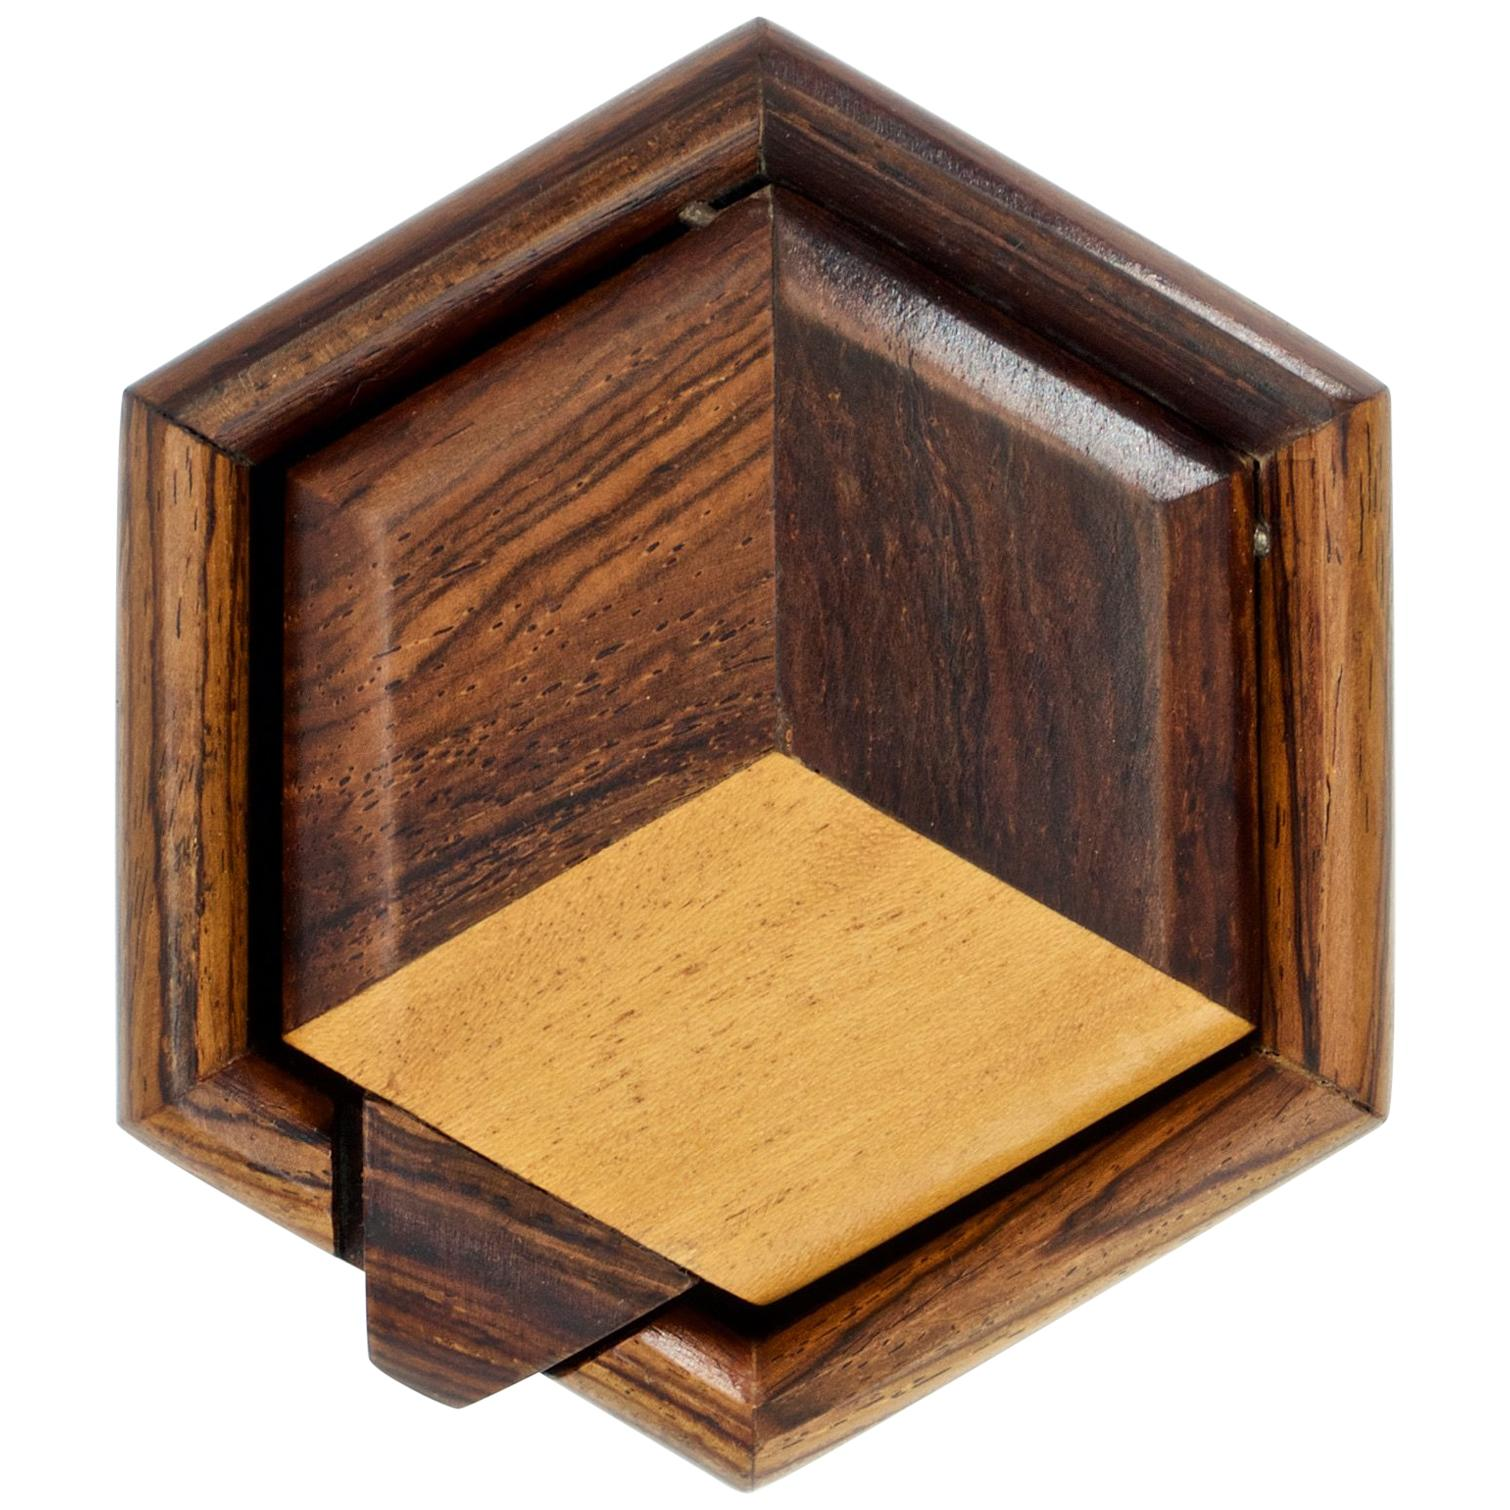 1960s Geometric Jewelry Trinket Geometric Box Mexican Craft Eclectic Woodworker